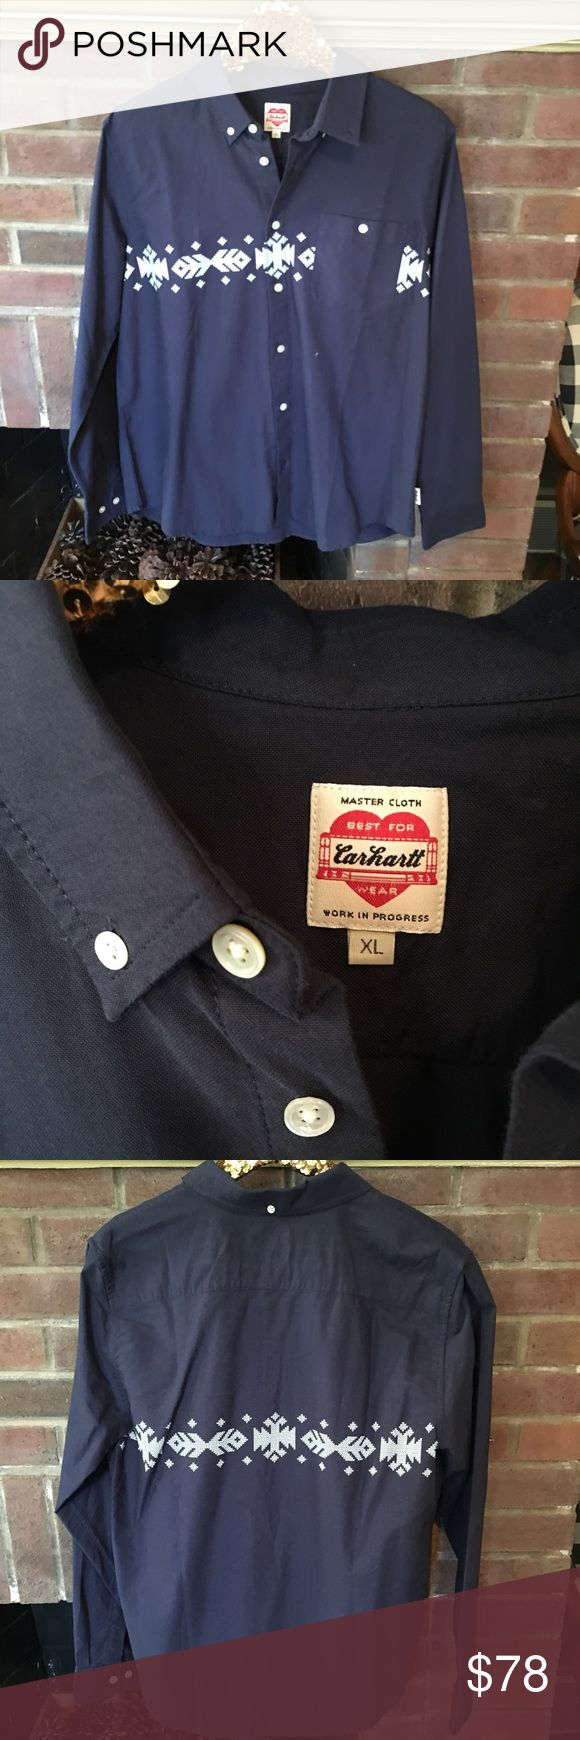 Carhartt Work In Progress WIP Button Down Shirt Cowboy style printed button down shirt by carhartt work in progress. Purchased online so no tags but never worn. Stitch design is screen printed on, sort of a western or southwest/ Aztec style design. Navy blue with white design. Rare hard to find style. I couldn't even find a stock photo from the carhartt work in progress site Carhartt Shirts Casual Button Down Shirts